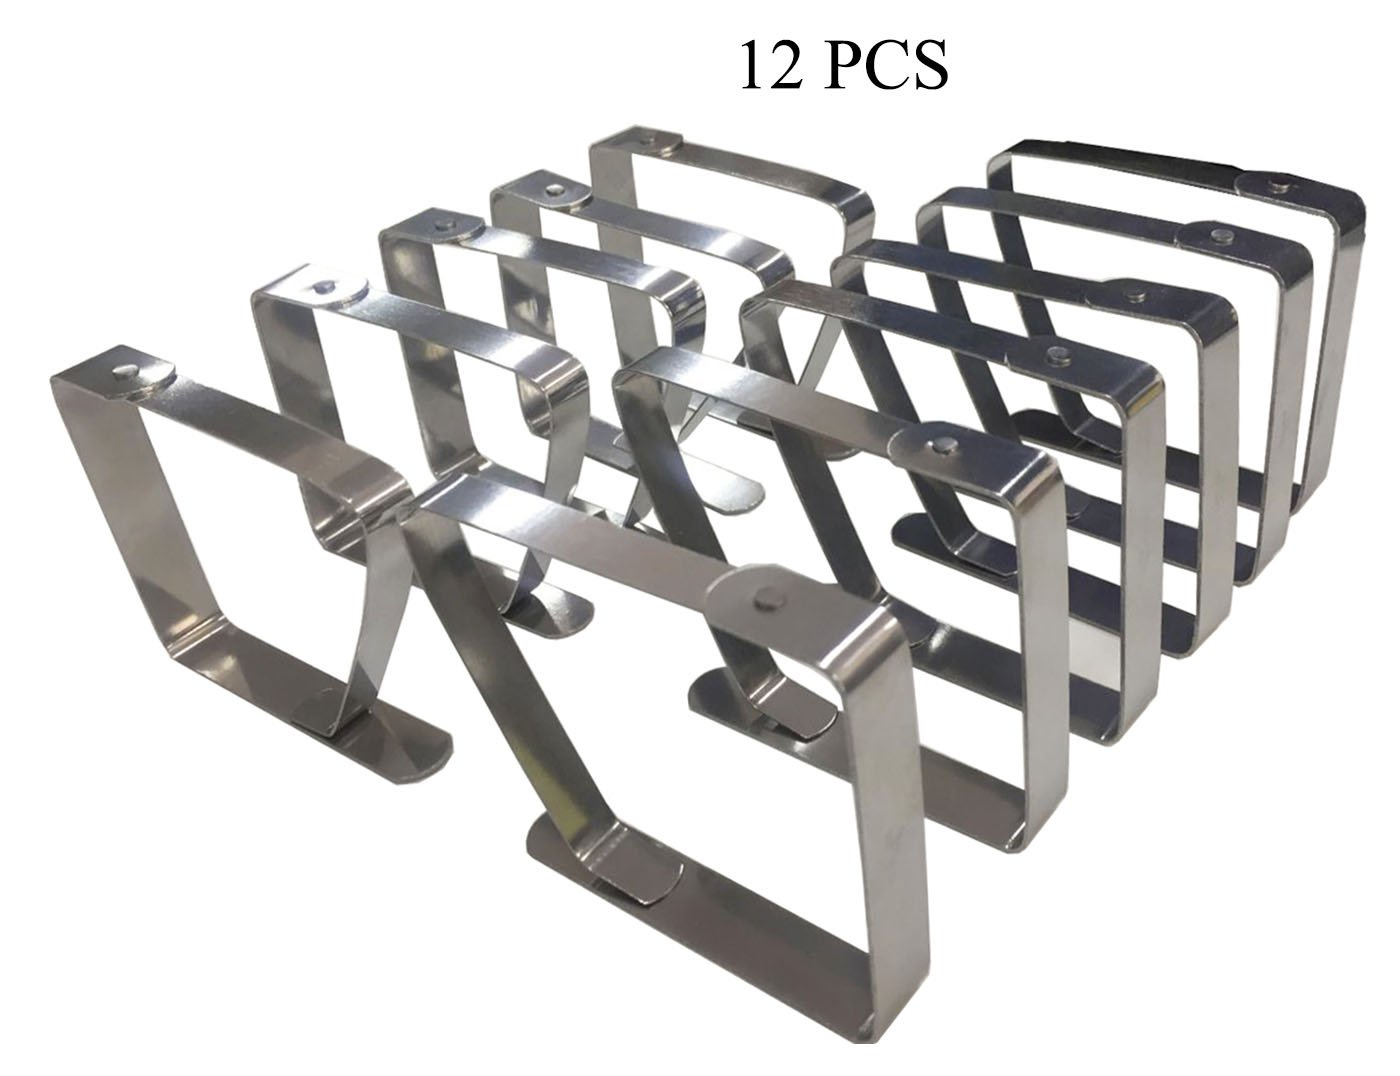 levylisa Pack of 12 Stainless Steel Tablecloth Clips for 2.05 inch Thick Tables Outdoor Picnic Metal Tablecloth Clamps,Table Cover Clips,Drawing Board Clips,Wedding Picnic Indoor Outdoor